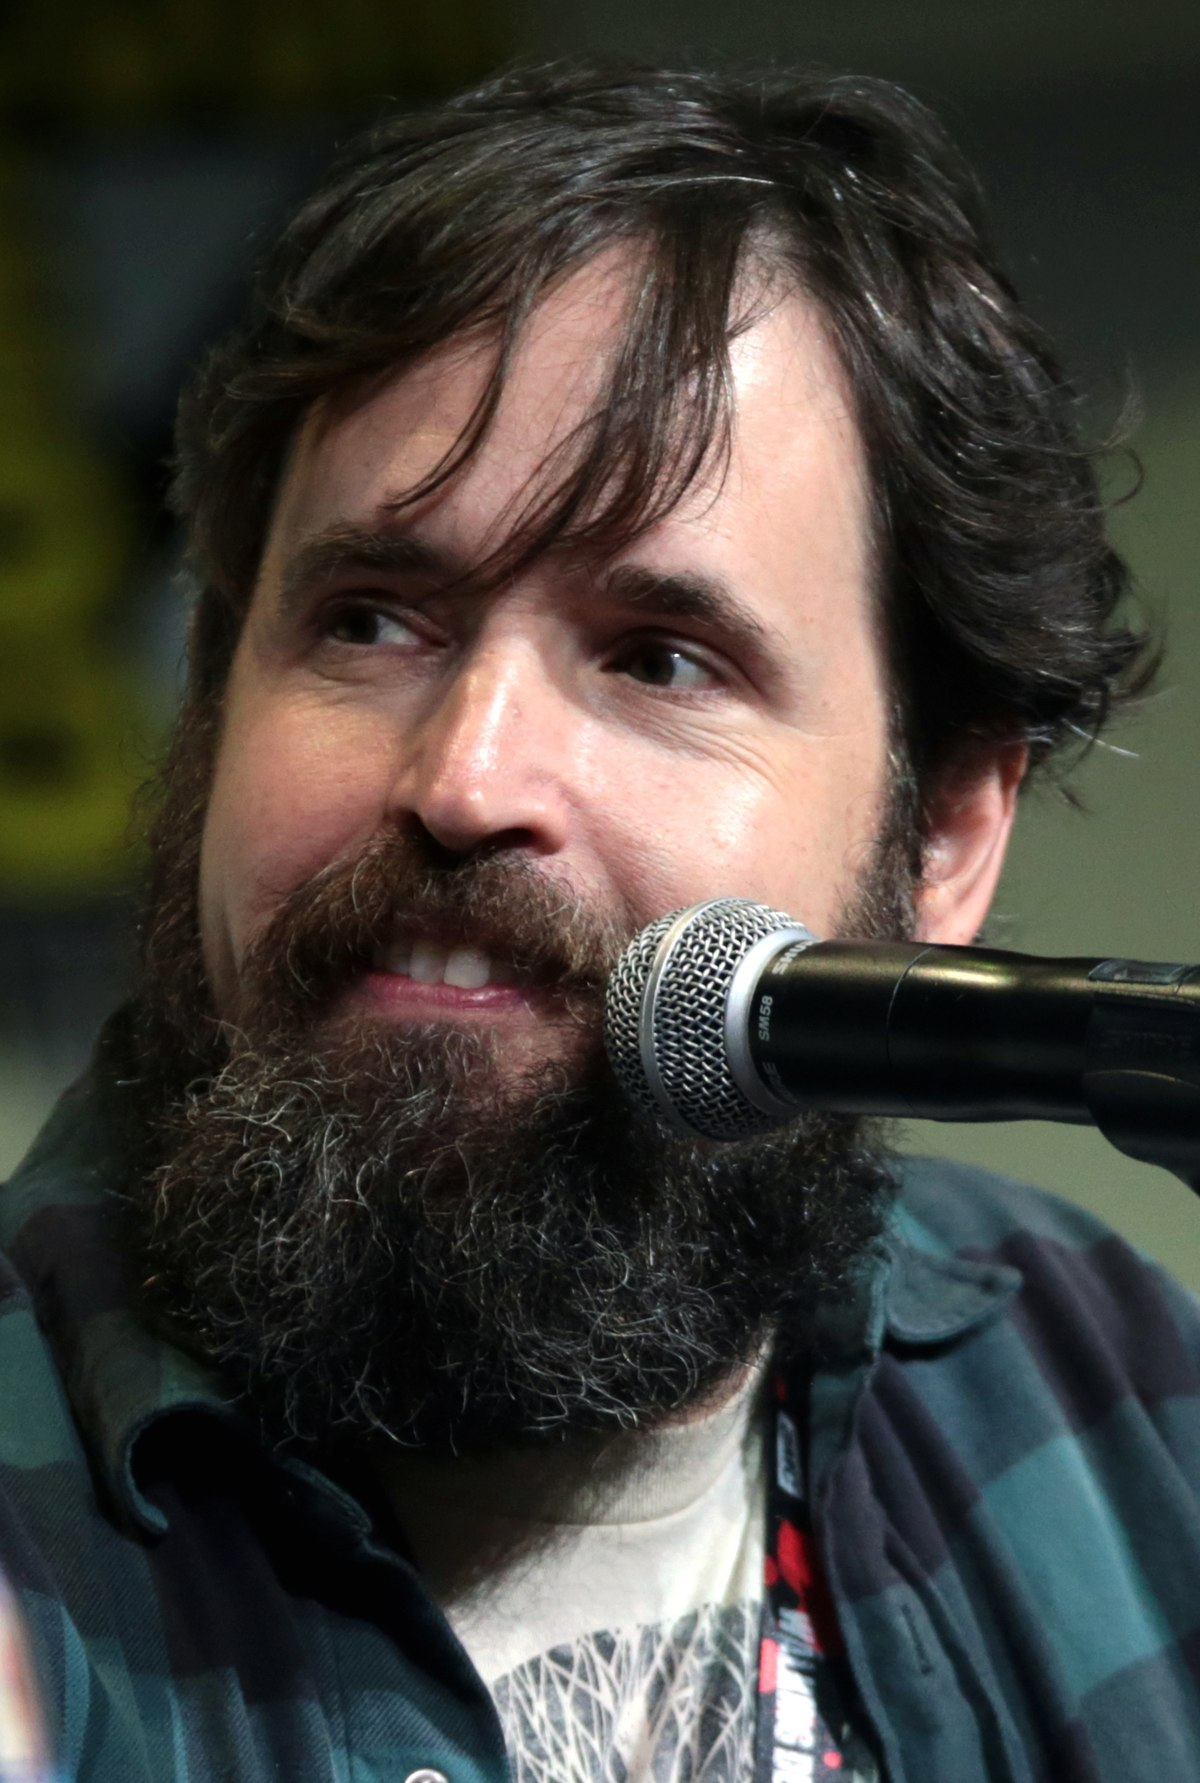 Duncan Trussell Wikipedia